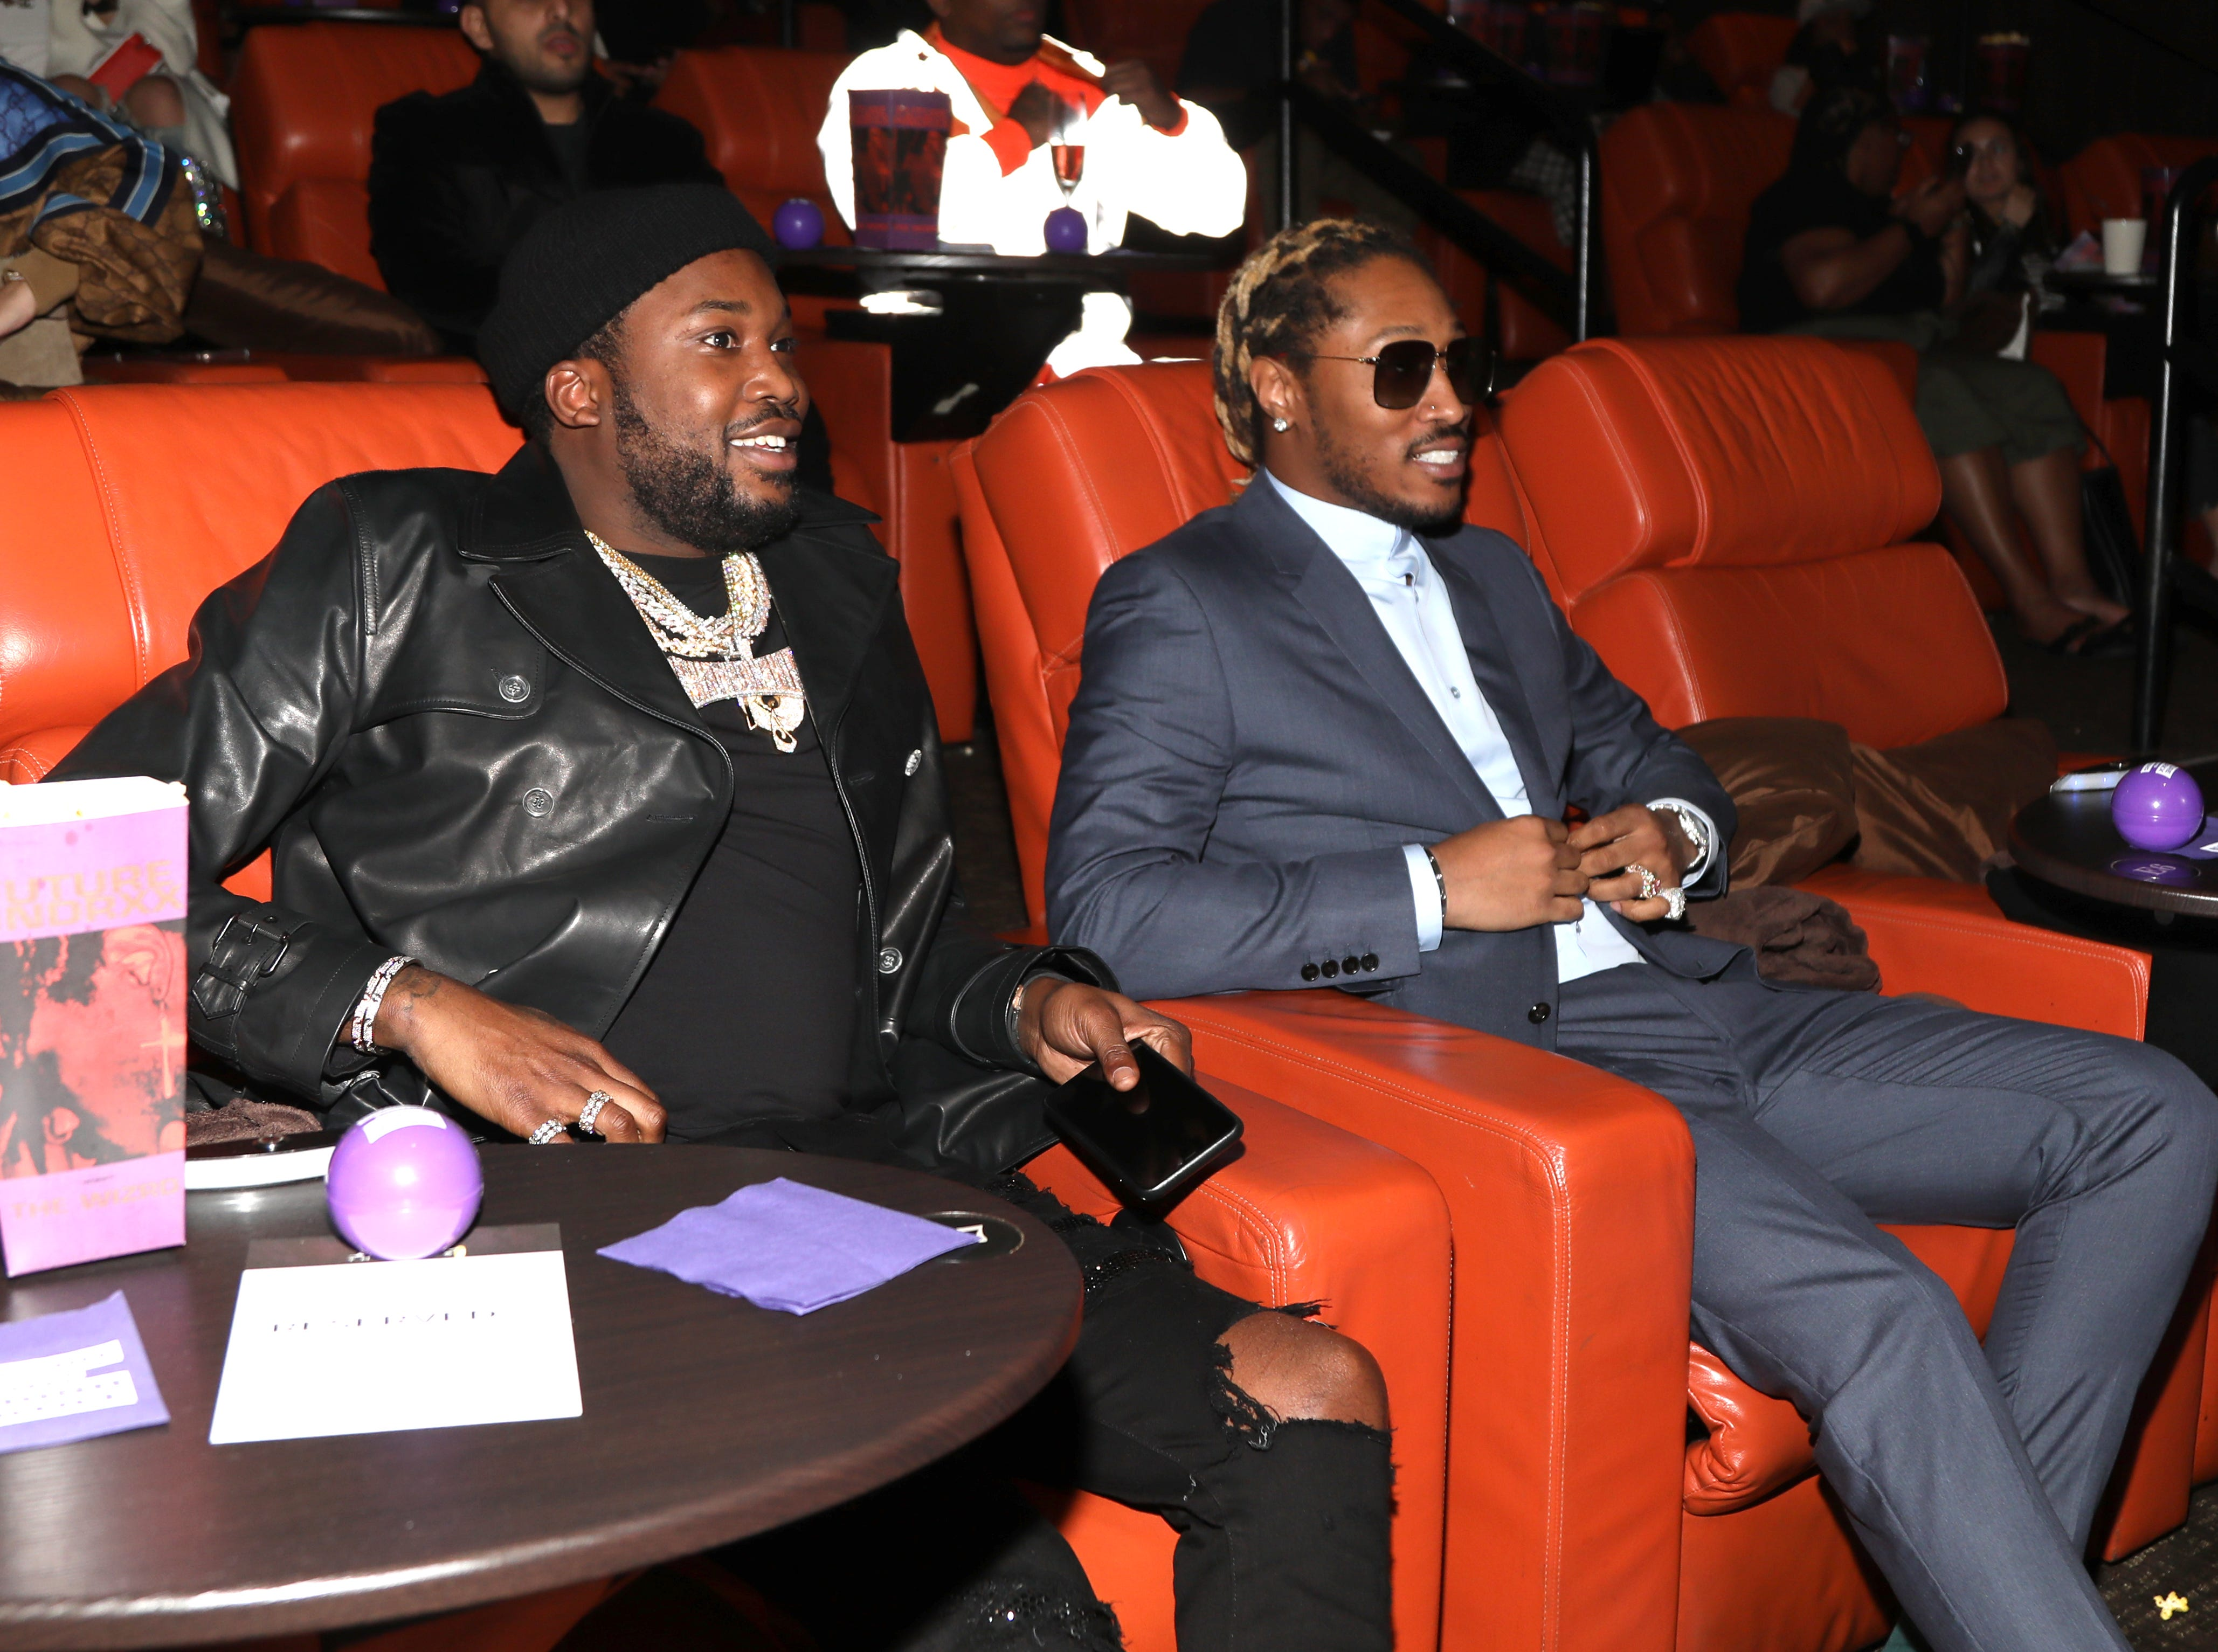 LOS ANGELES, CALIFORNIA - JANUARY 08: Meek Mill and Future attend a screening of Future Hndrxx Presents: The Wizrd Documentary on January 08, 2019 in Los Angeles, California. (Photo by Jerritt Clark/Getty Images for Future ) ORG XMIT: 775279372 ORIG FILE ID: 1080487726